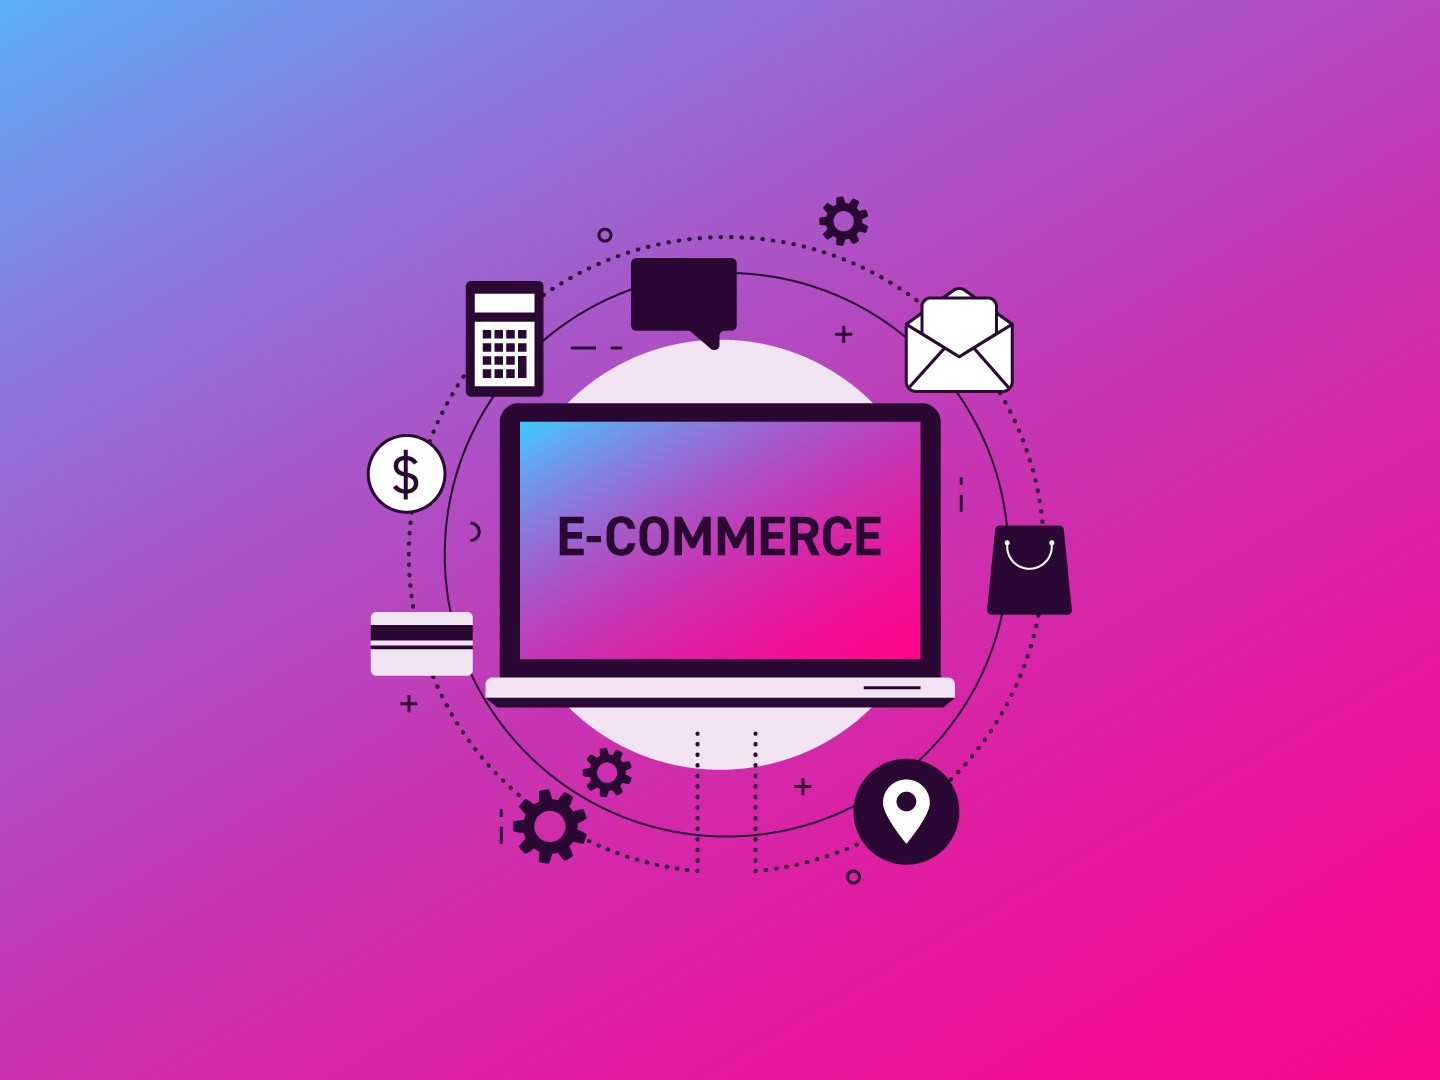 3 Step fondamentali per realizzare un sito e-commerce